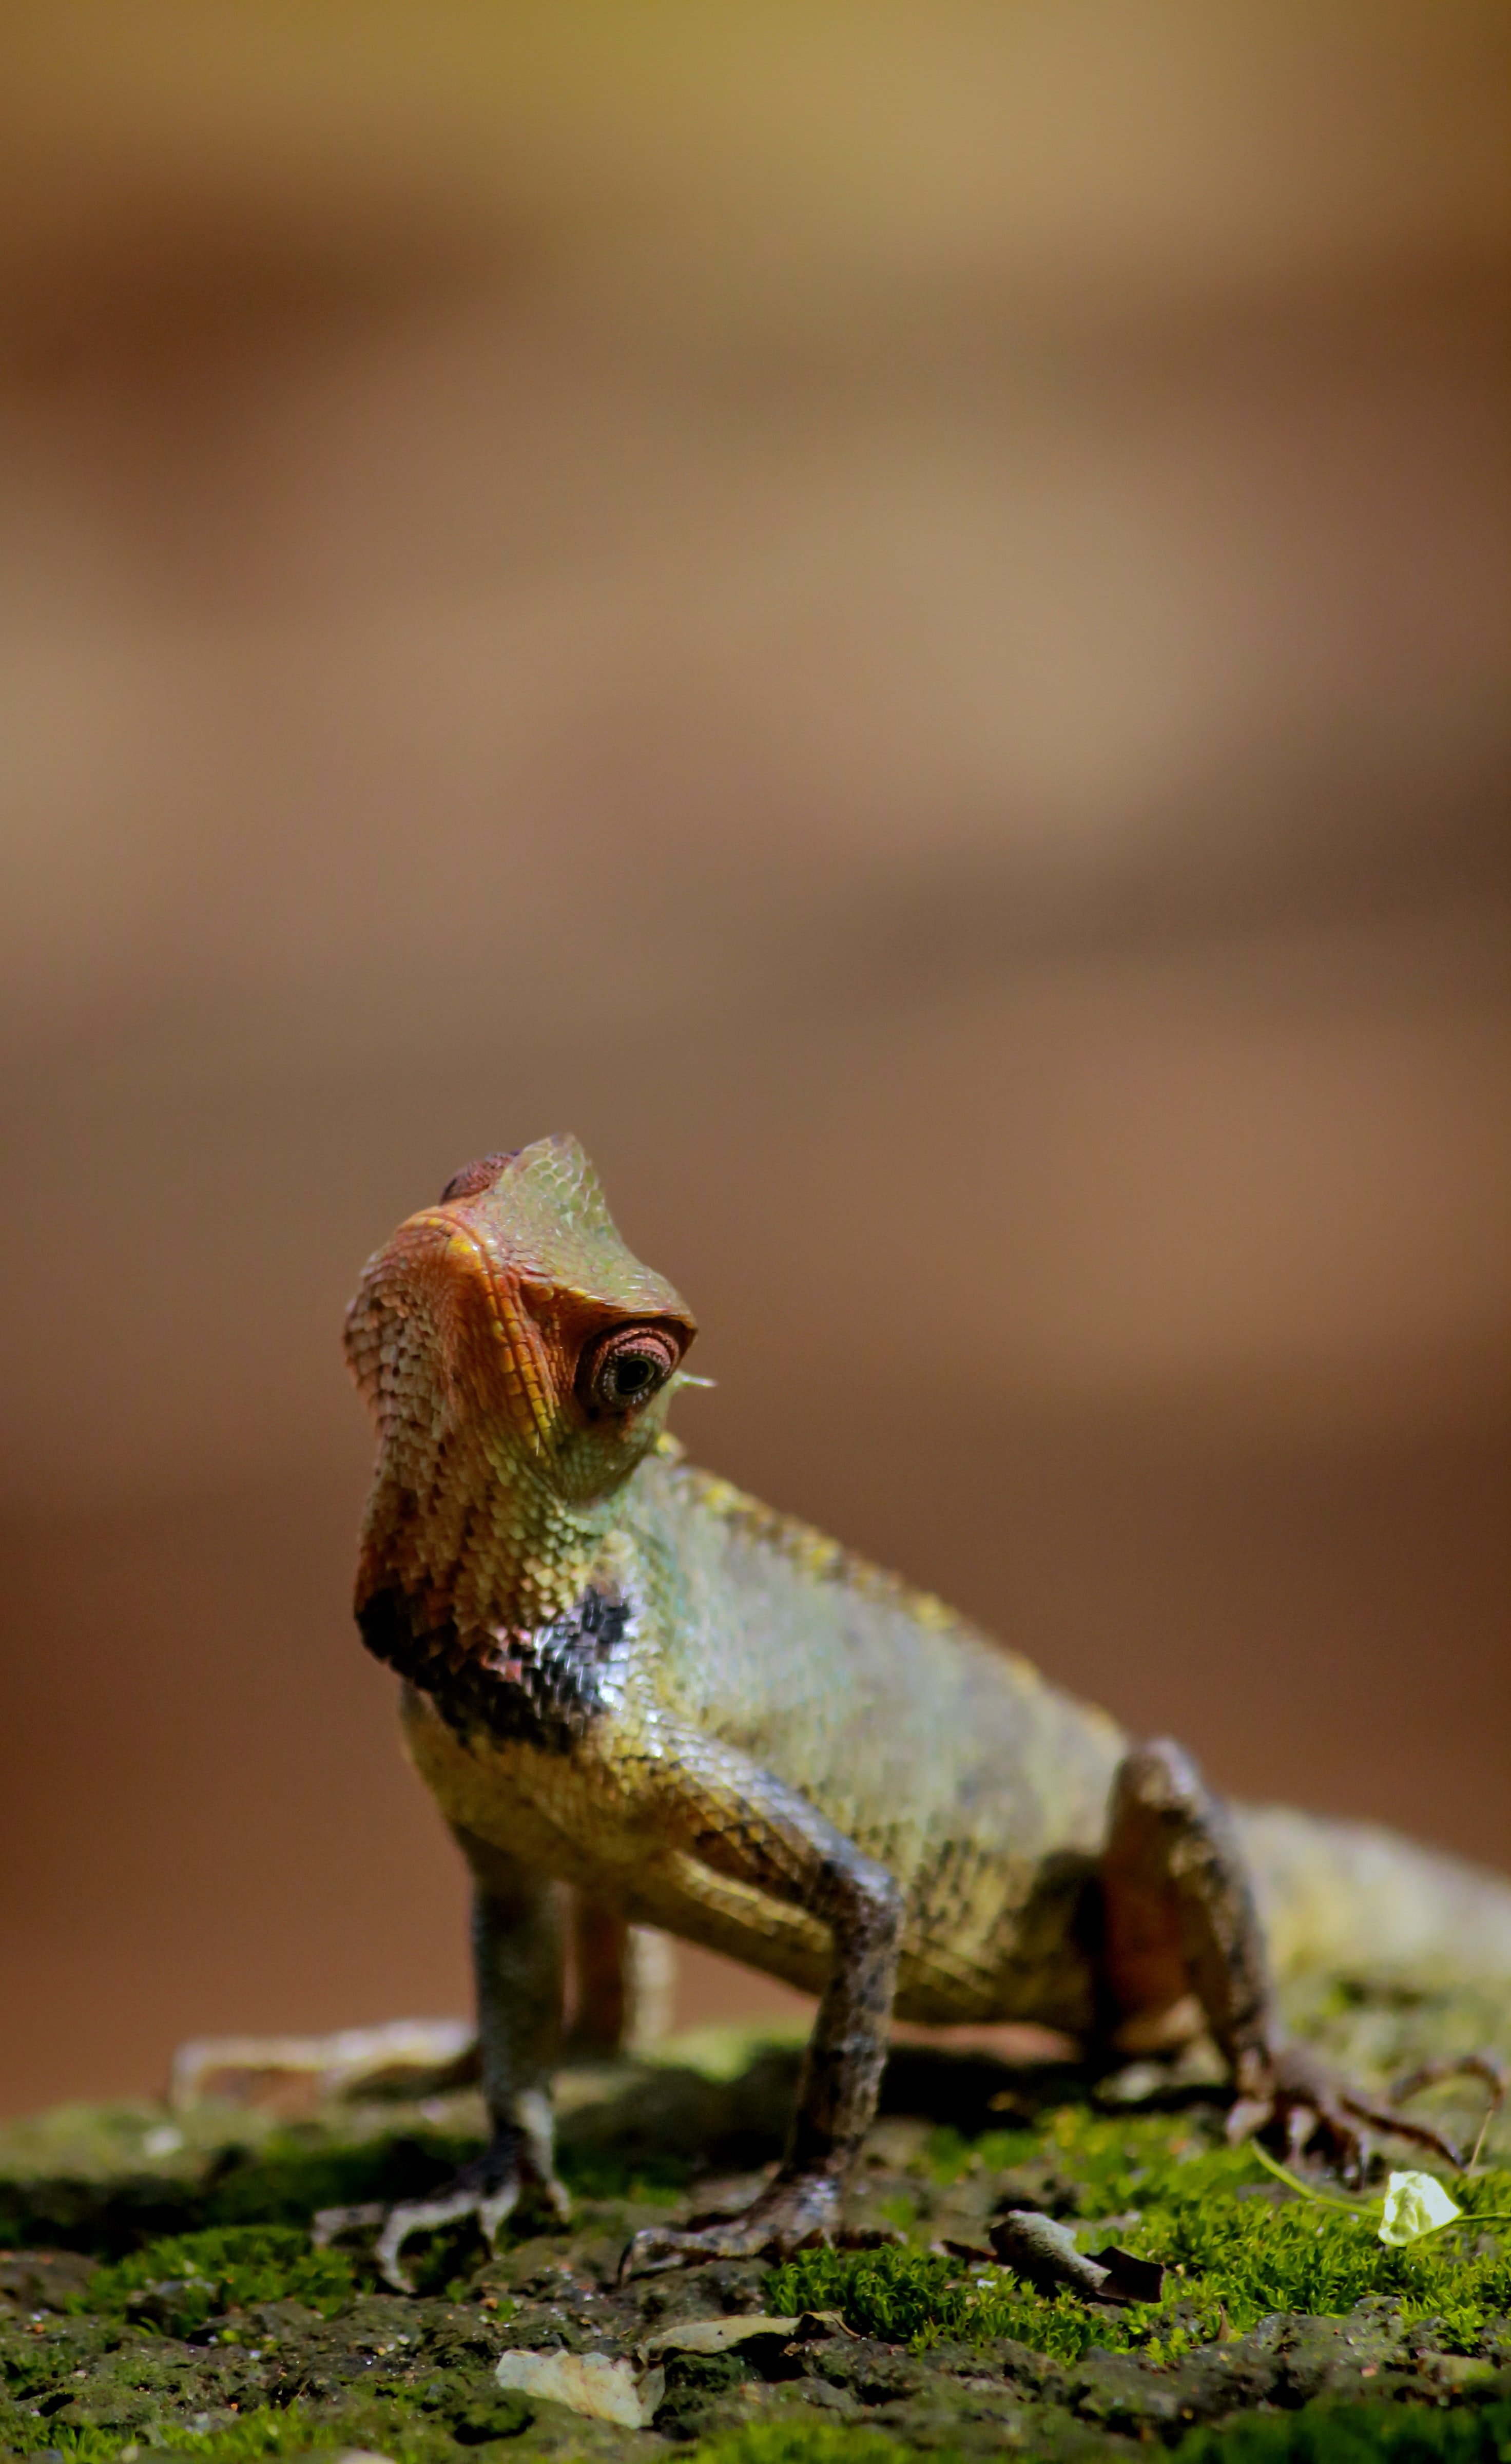 shallow focus photo of reptile